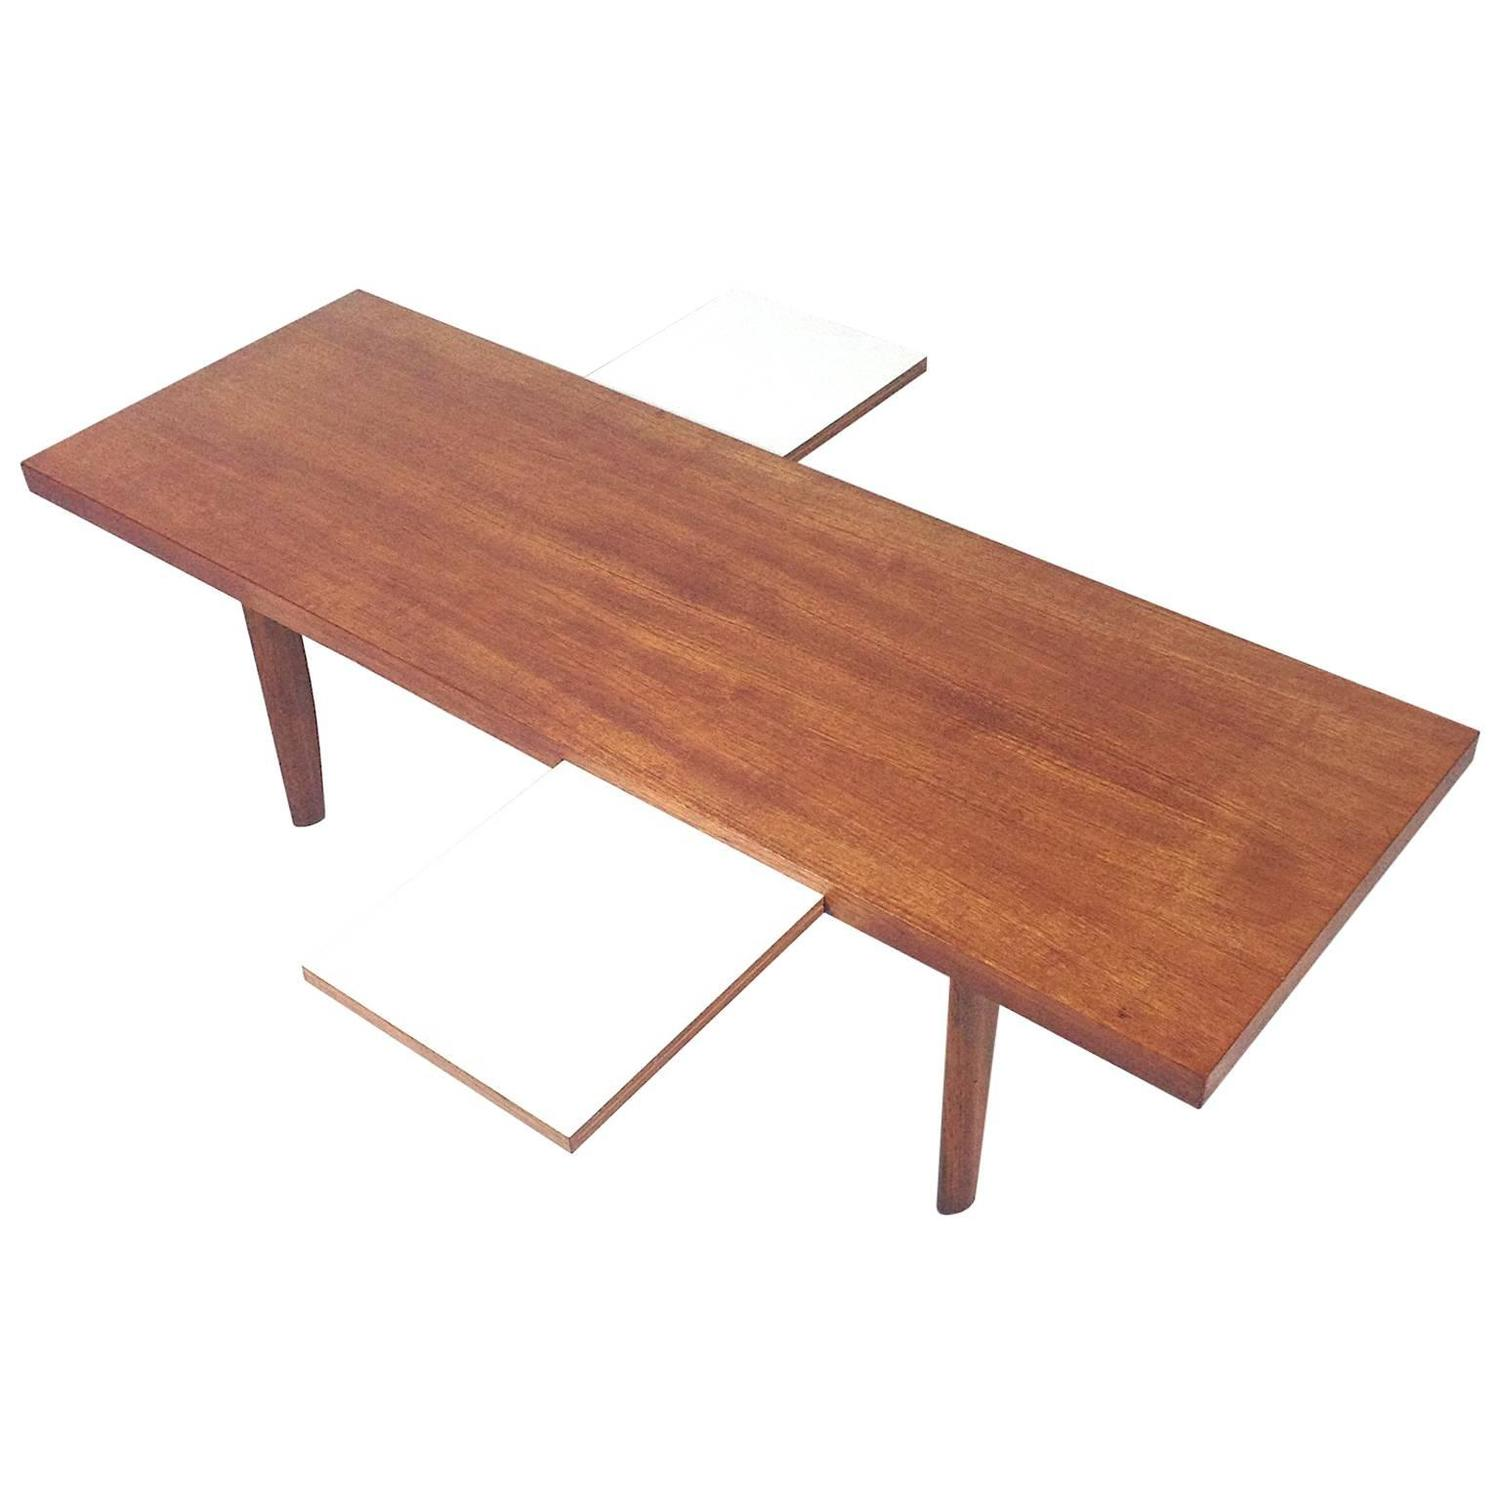 1960s scandinavian coffee table with extractable white leaves at 1stdibs. Black Bedroom Furniture Sets. Home Design Ideas